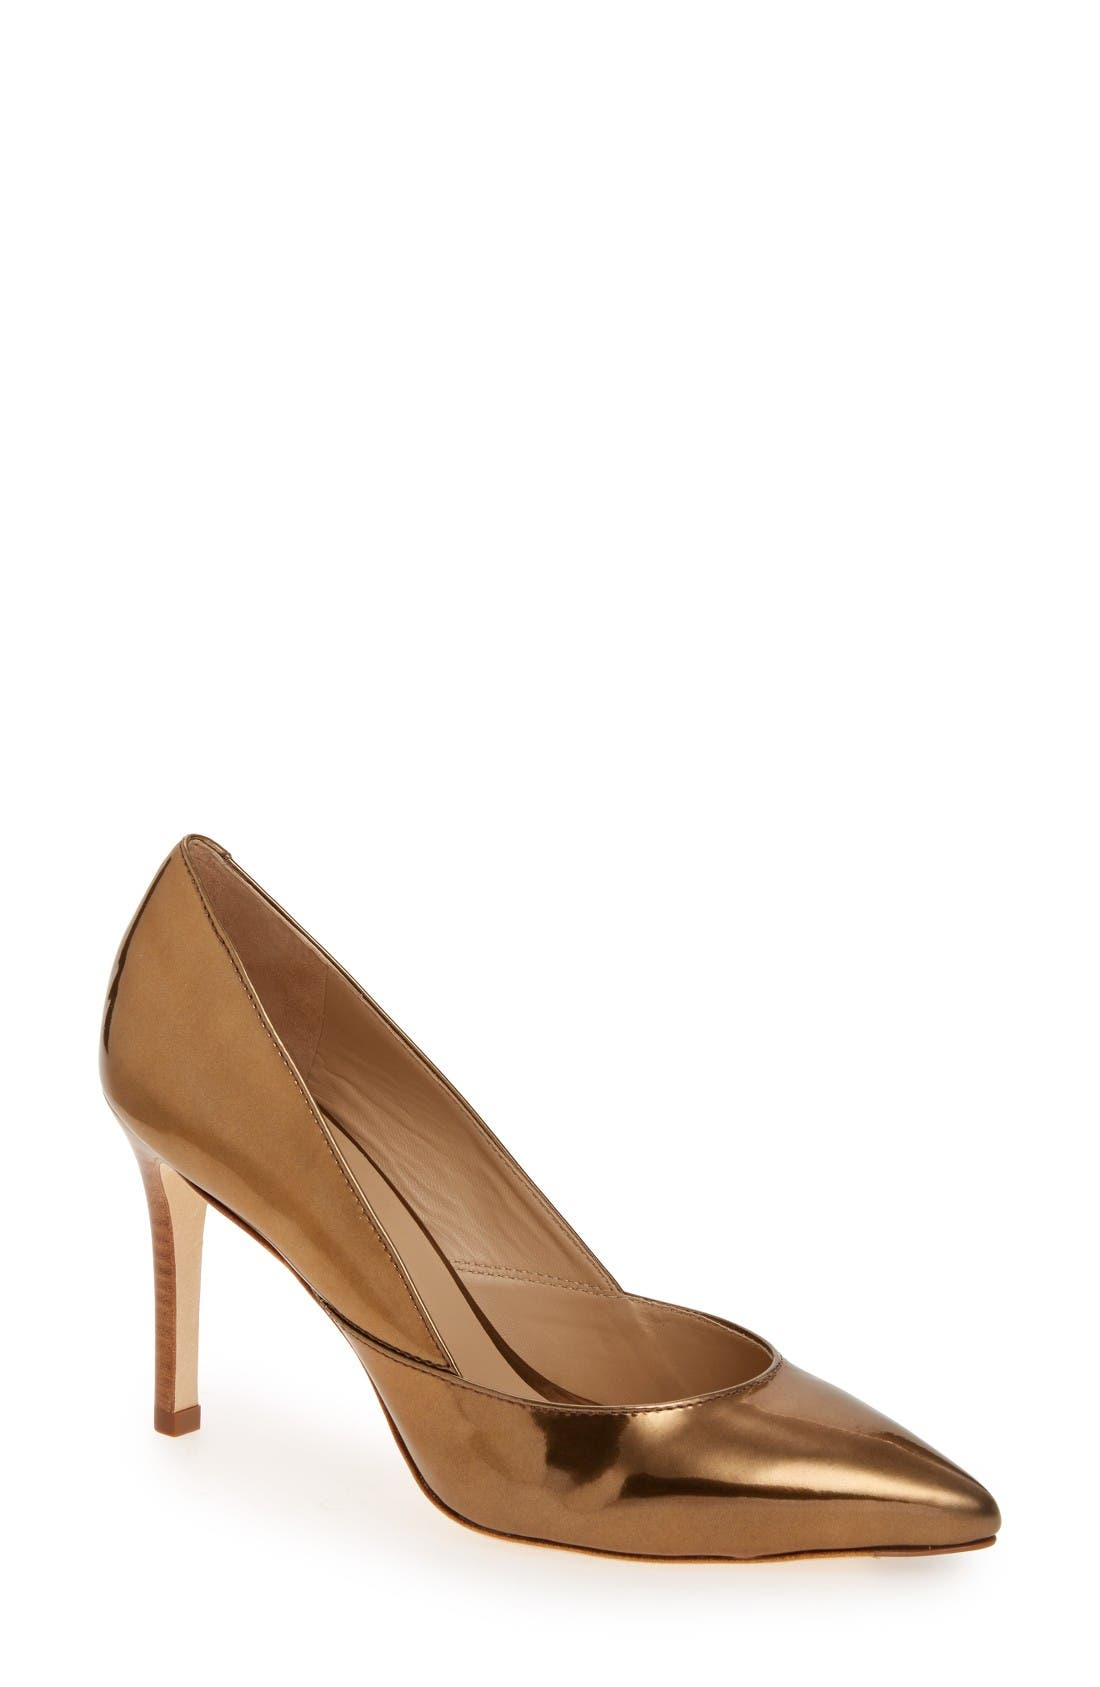 JOHNSTON & MURPHY 'Vanessa' Pointy Toe Leather Pump